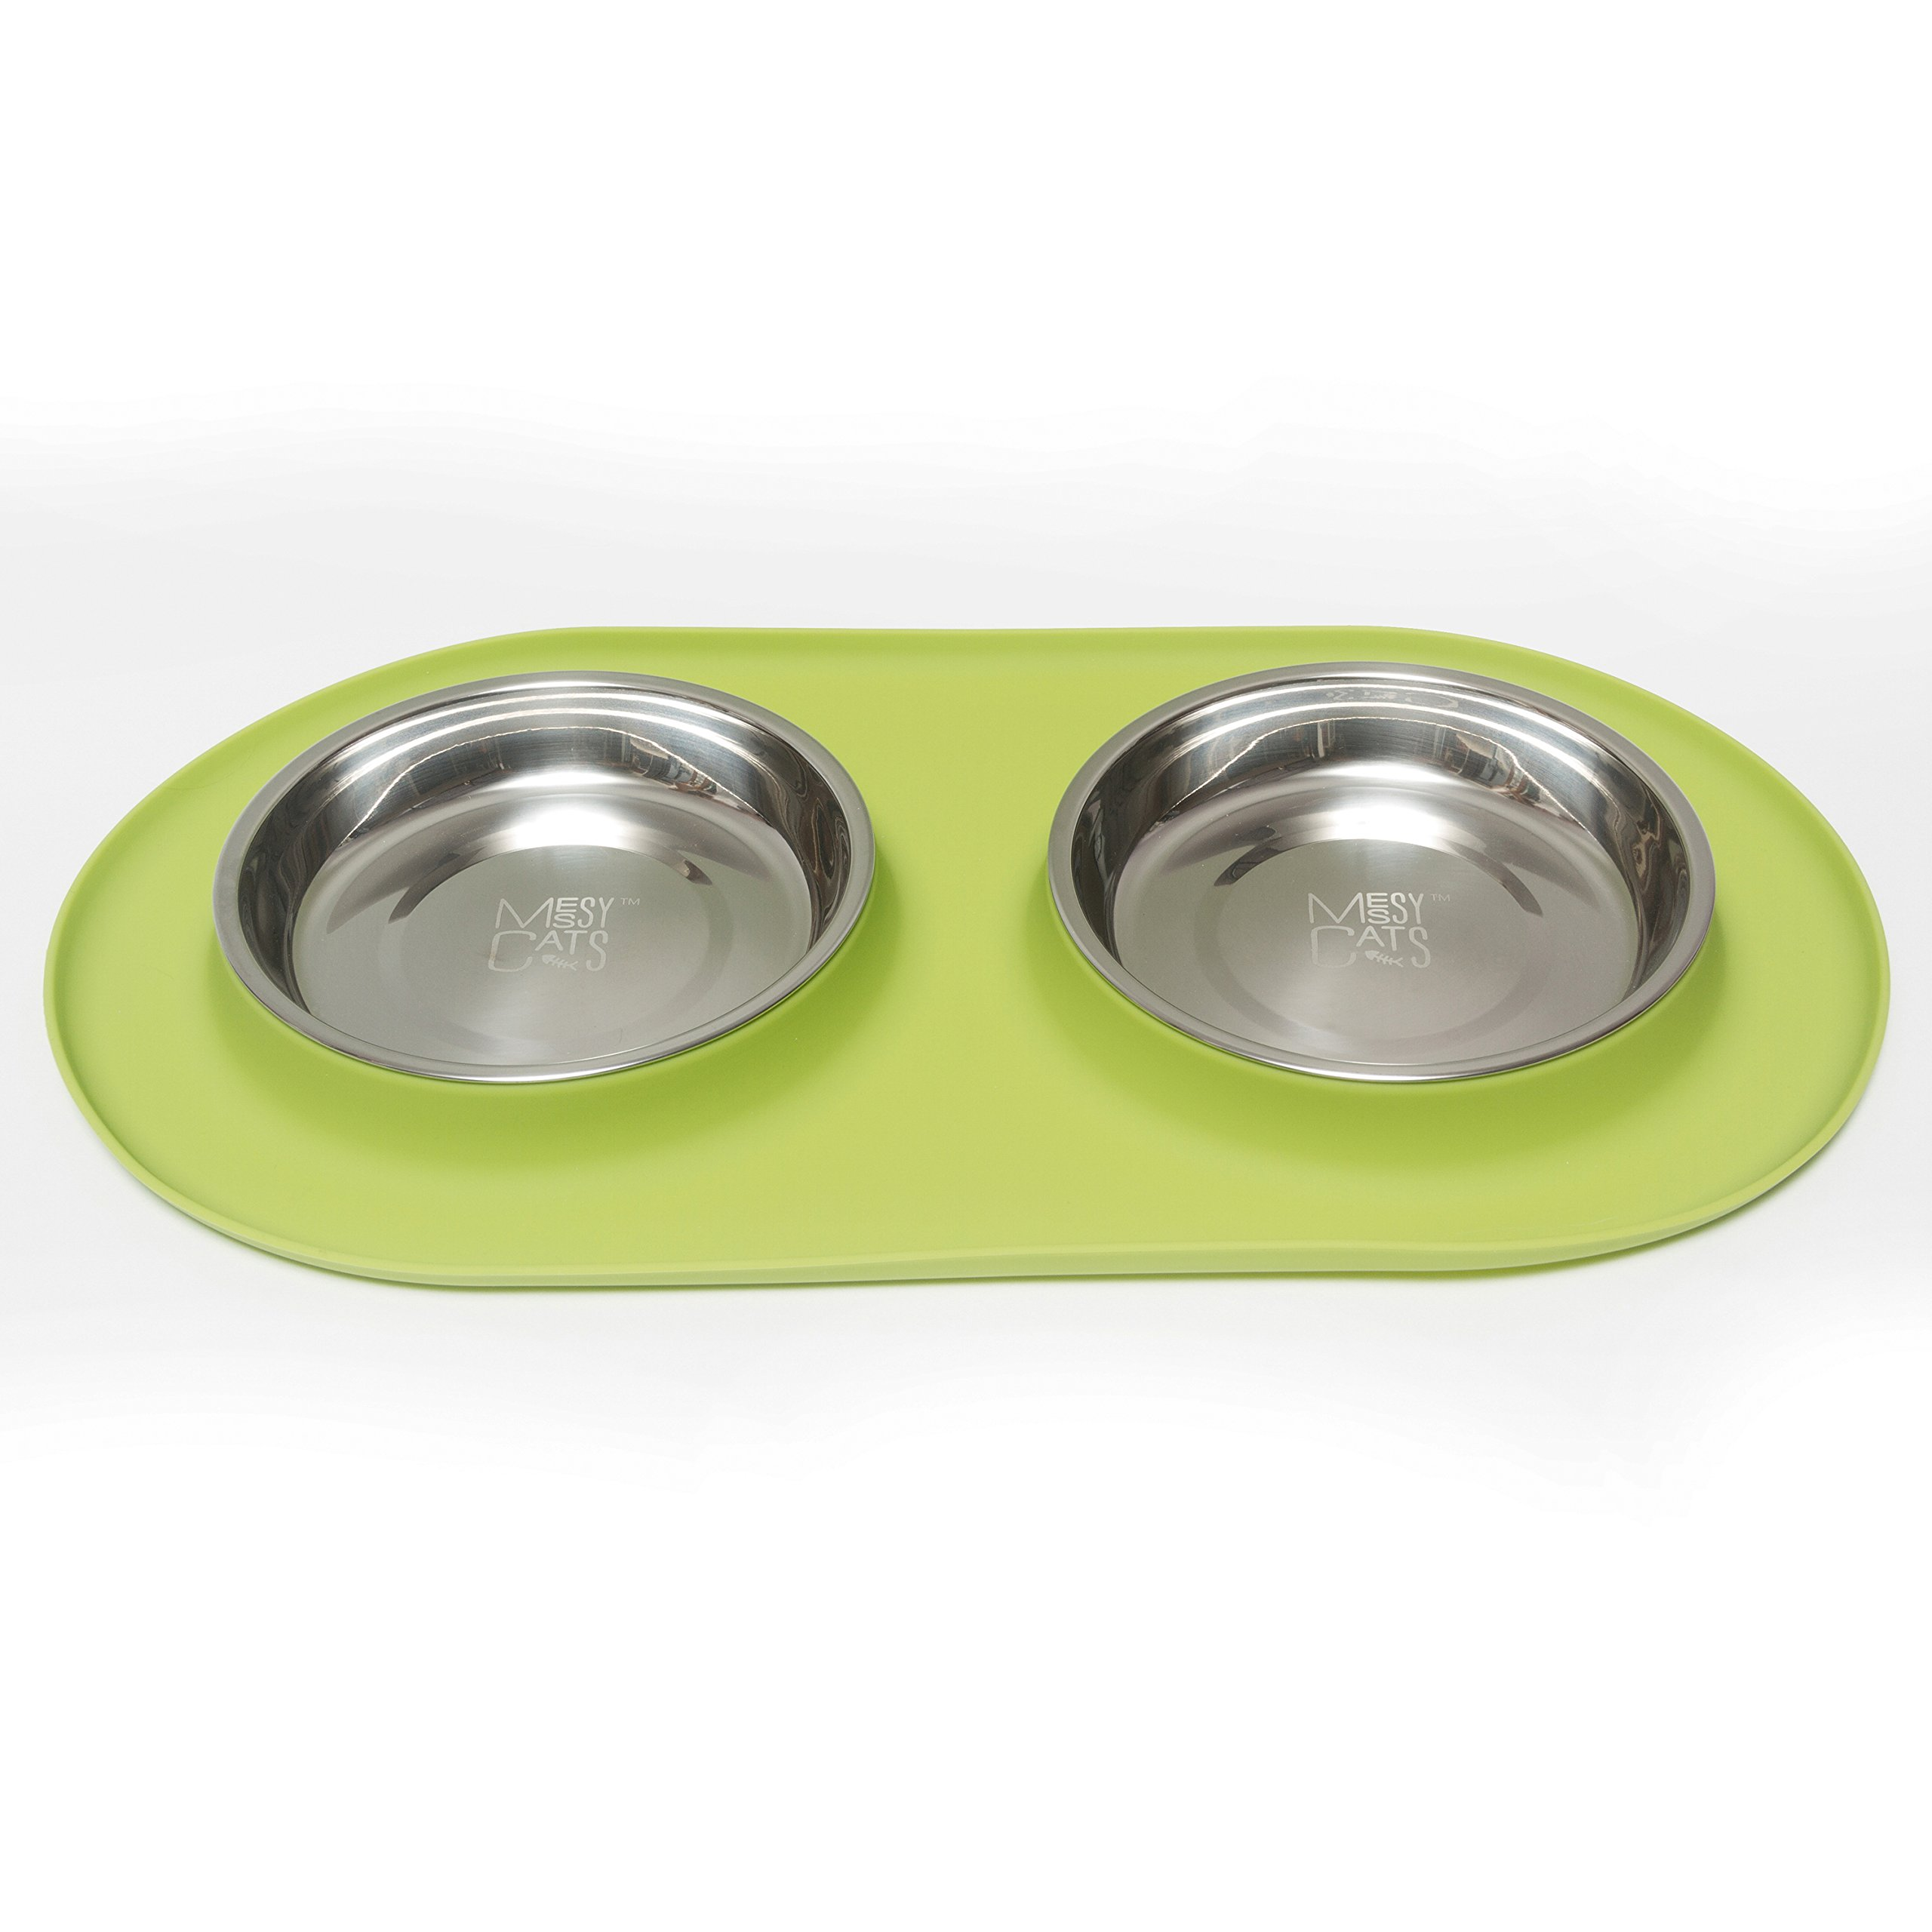 Messy Mutts Stainless Steel Double Cat Feeder with Non-slip Silicone Base, Medium, Green